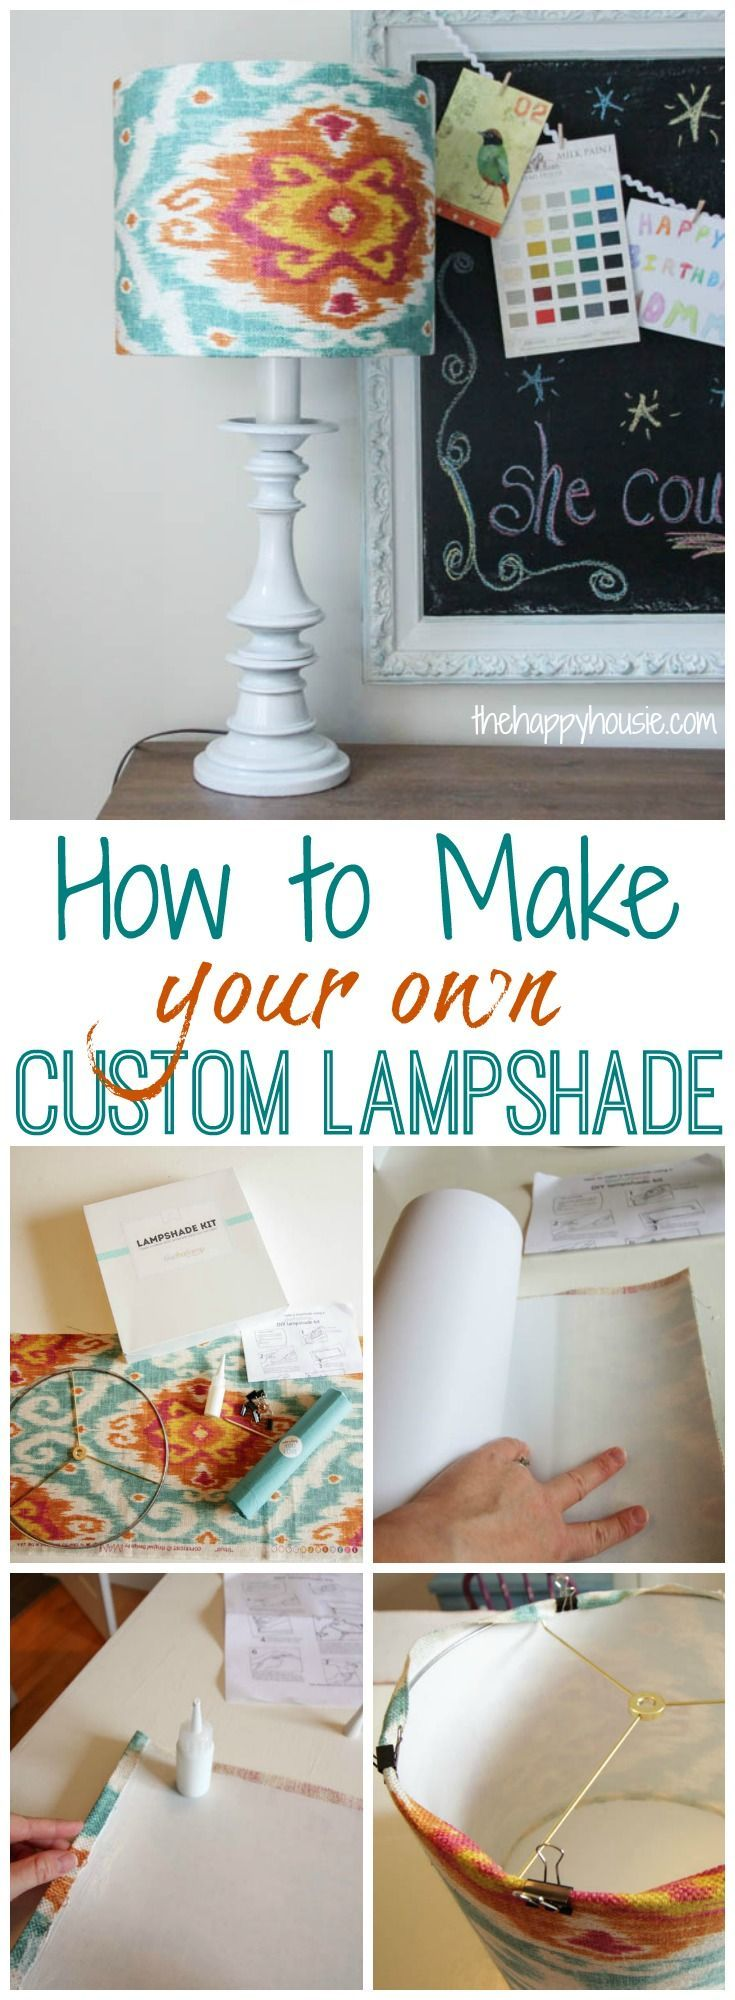 How to make your own custom lampshade tutorial using I love that lamp kit at thehappyhousie.com